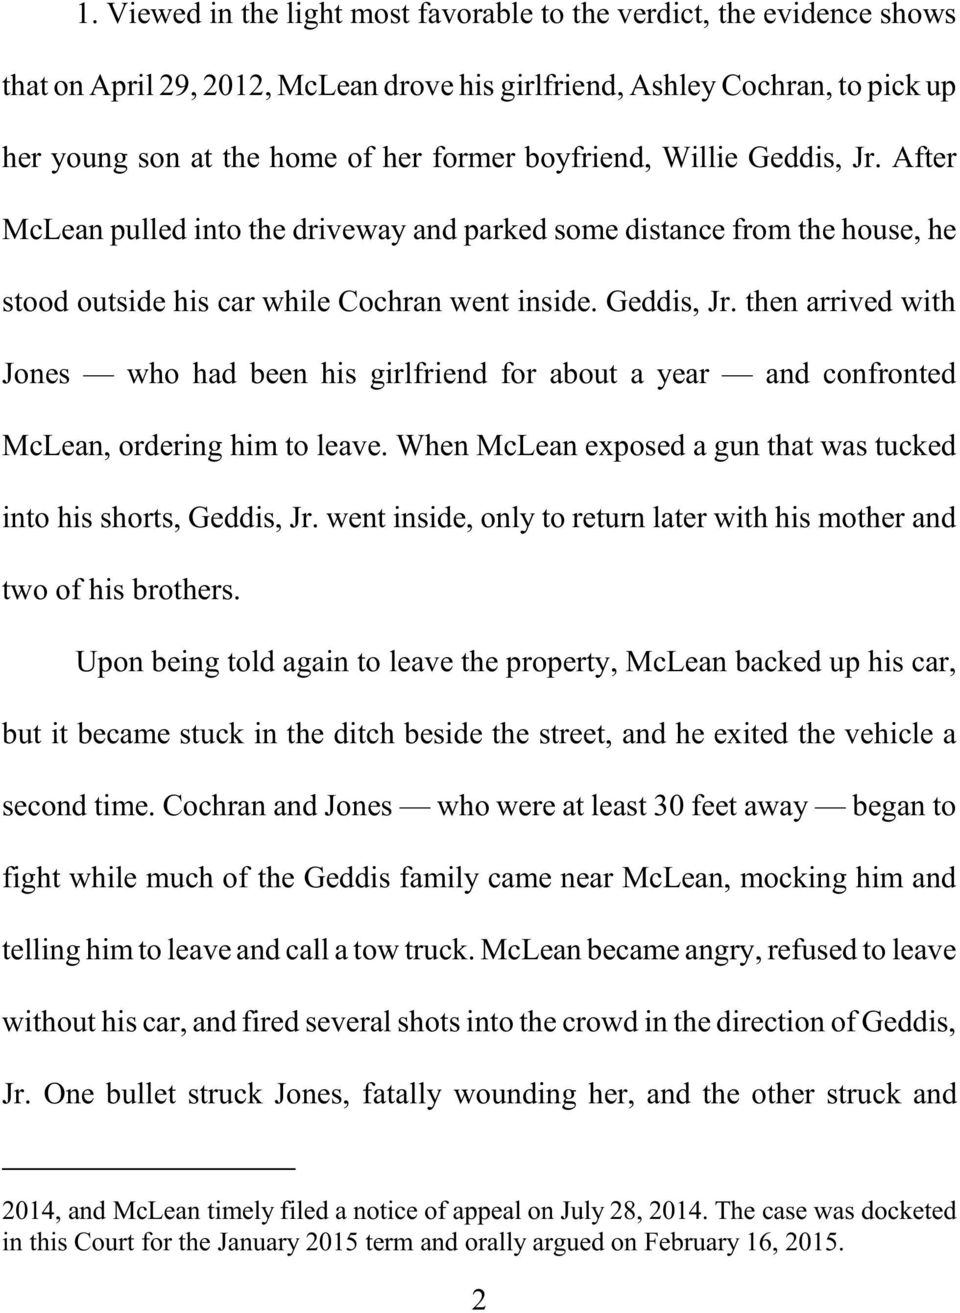 When McLean exposed a gun that was tucked into his shorts, Geddis, Jr. went inside, only to return later with his mother and two of his brothers.